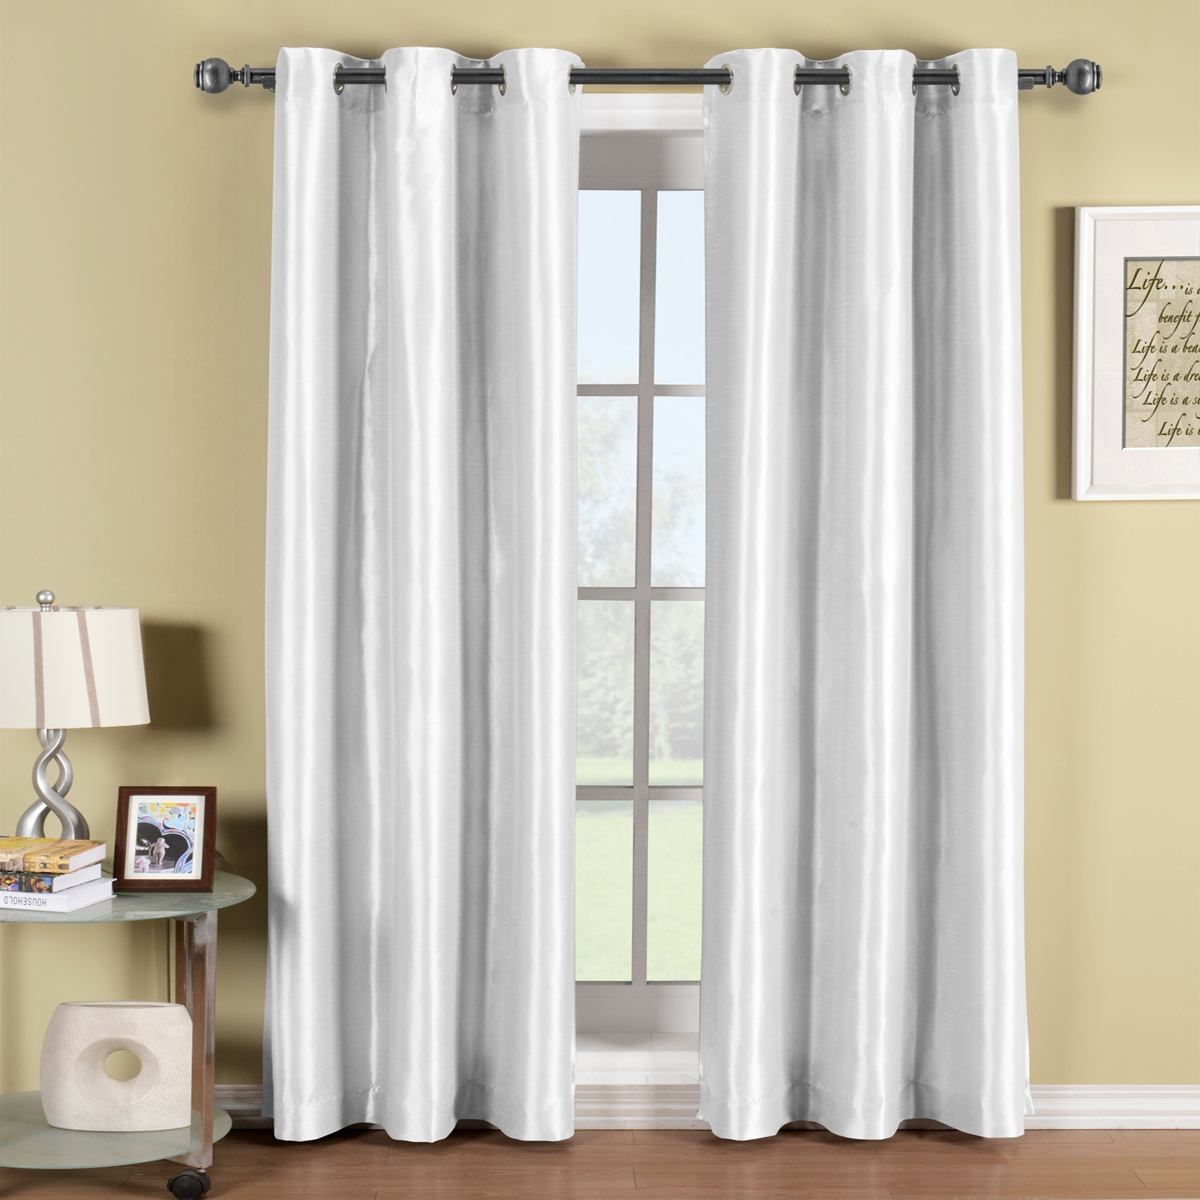 White Grommet Blackout Curtains Canada Business For Curtains With White Opaque Curtains (Image 15 of 15)